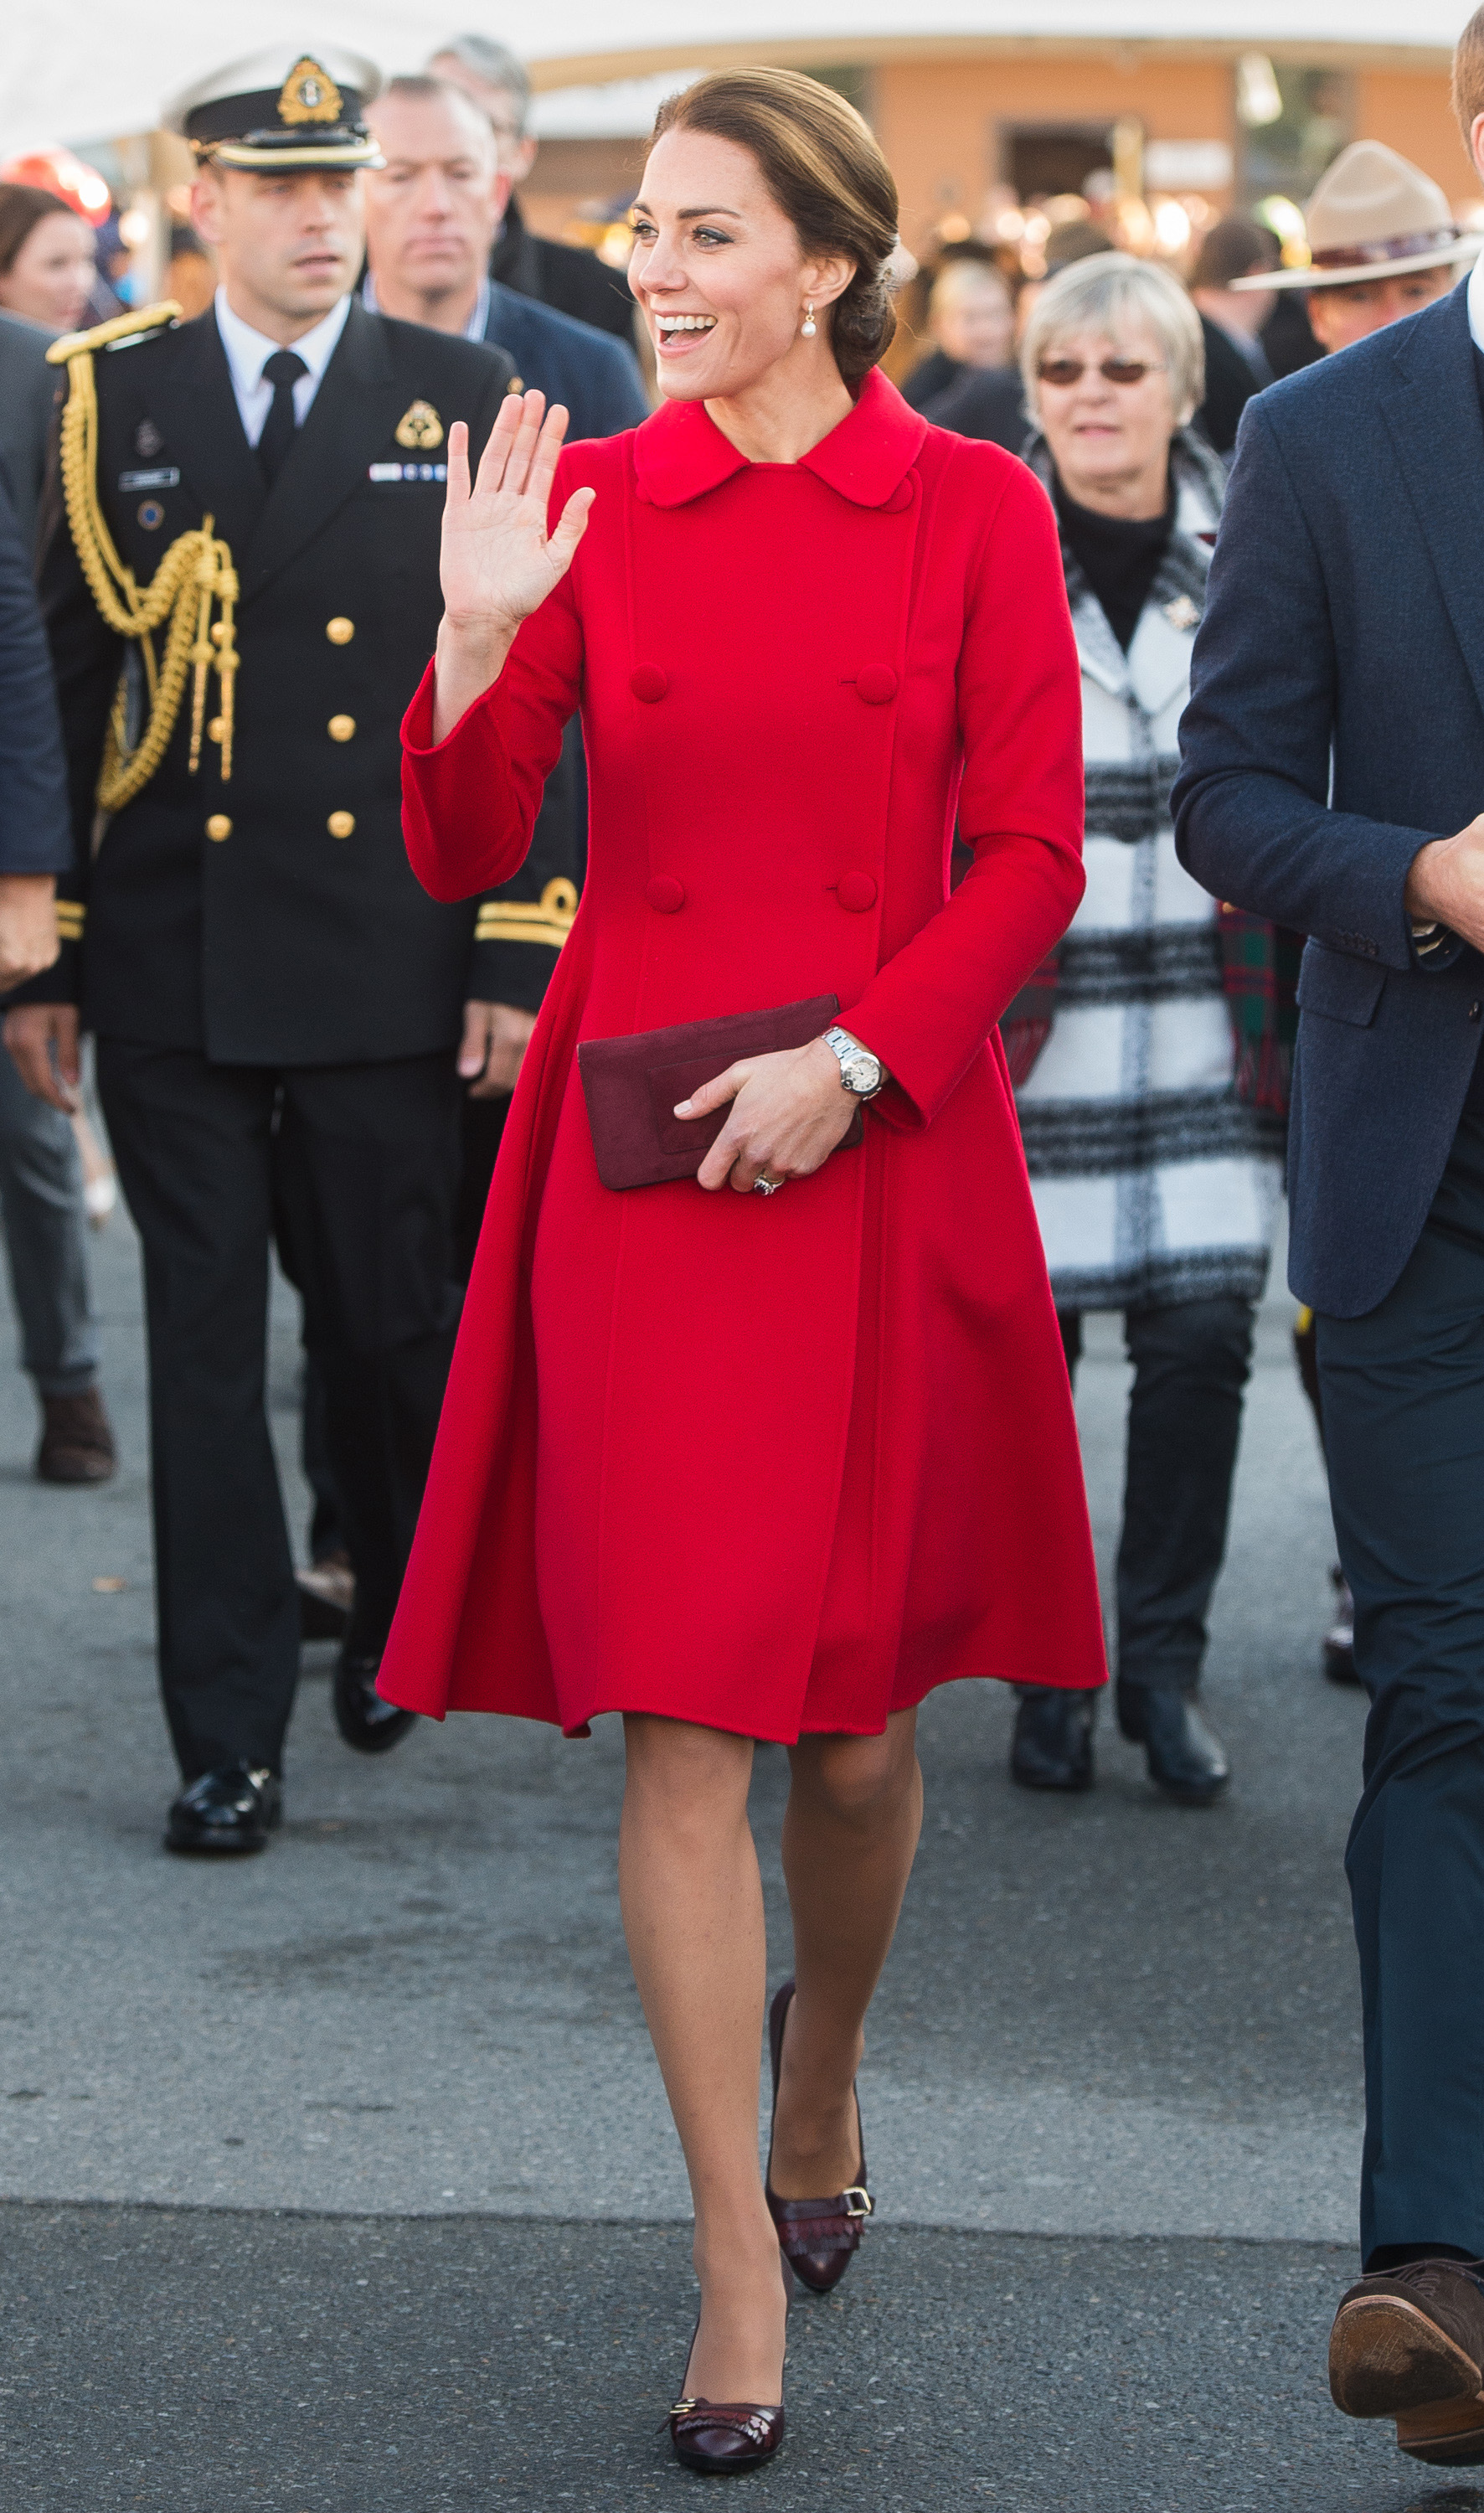 Catherine, Duchess of Cambridge, tours the Main Street Party in Whitehorse, Canada, on Sept. 28, 2016.